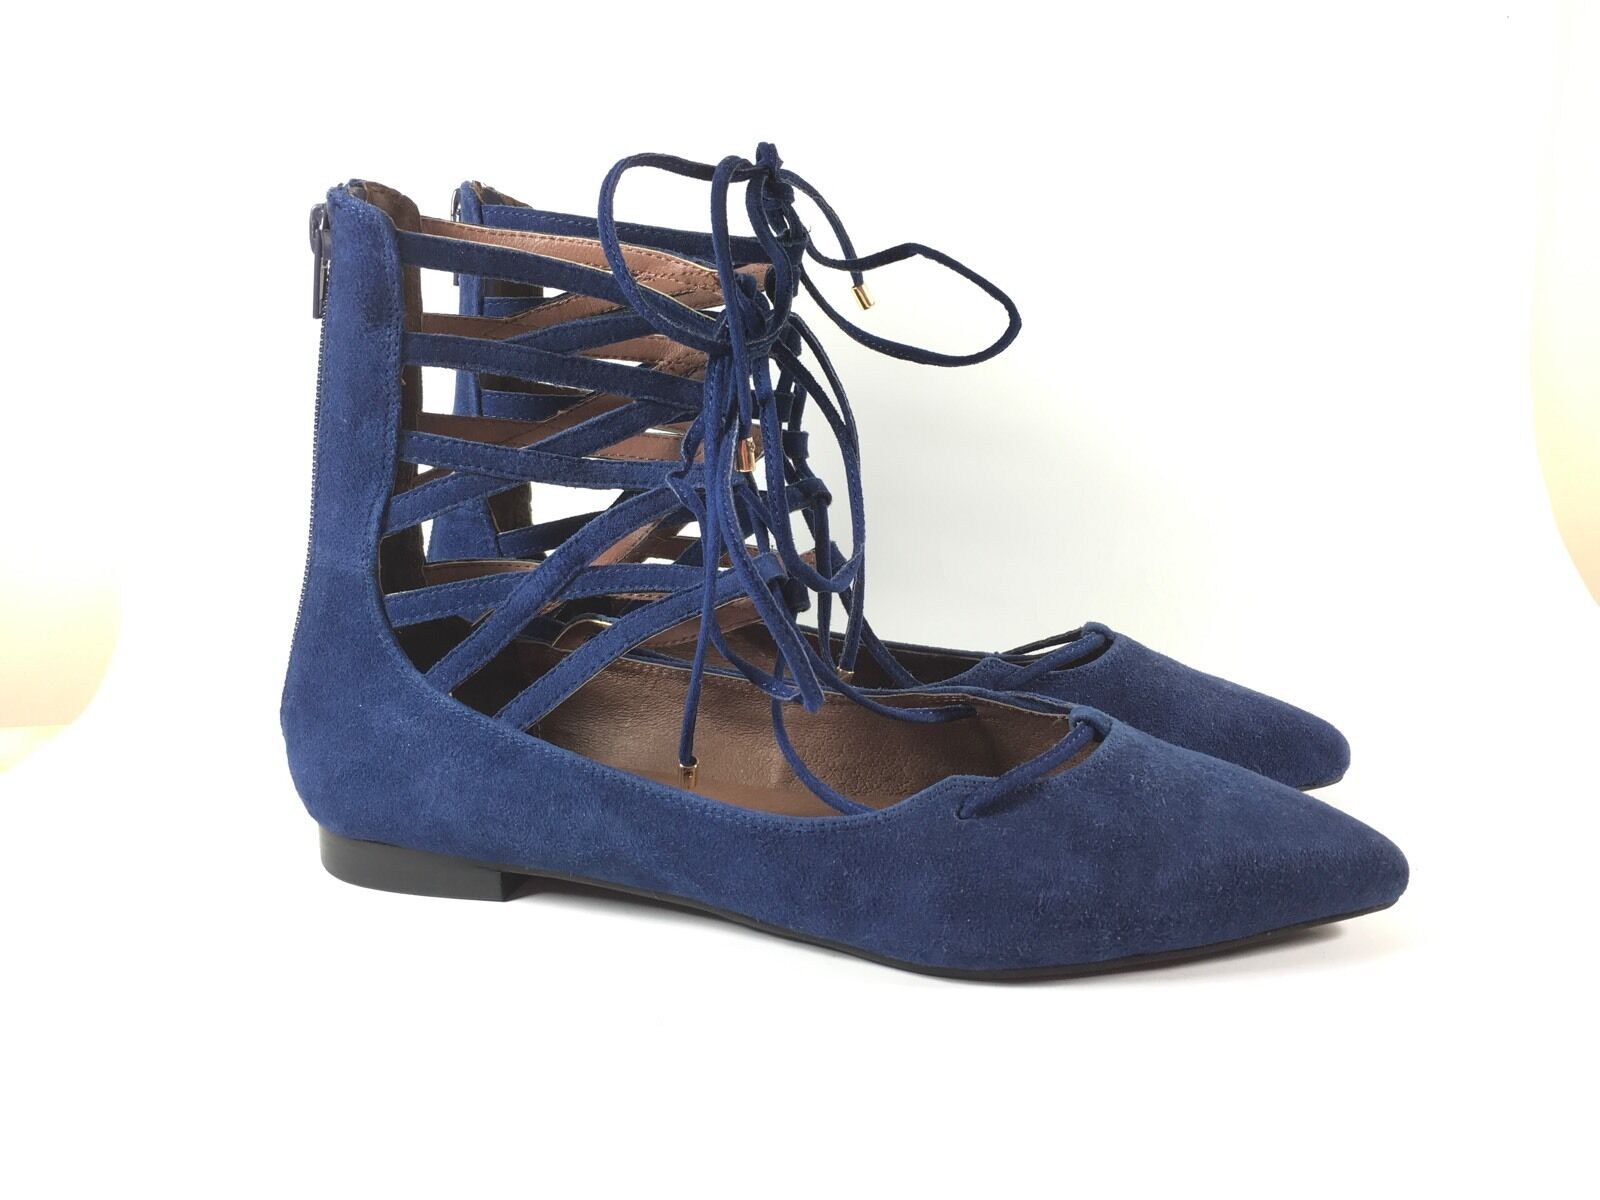 jeffrey campbell Damenss Sandales 9.5 flat Blau suede lace up zipper strap pointed